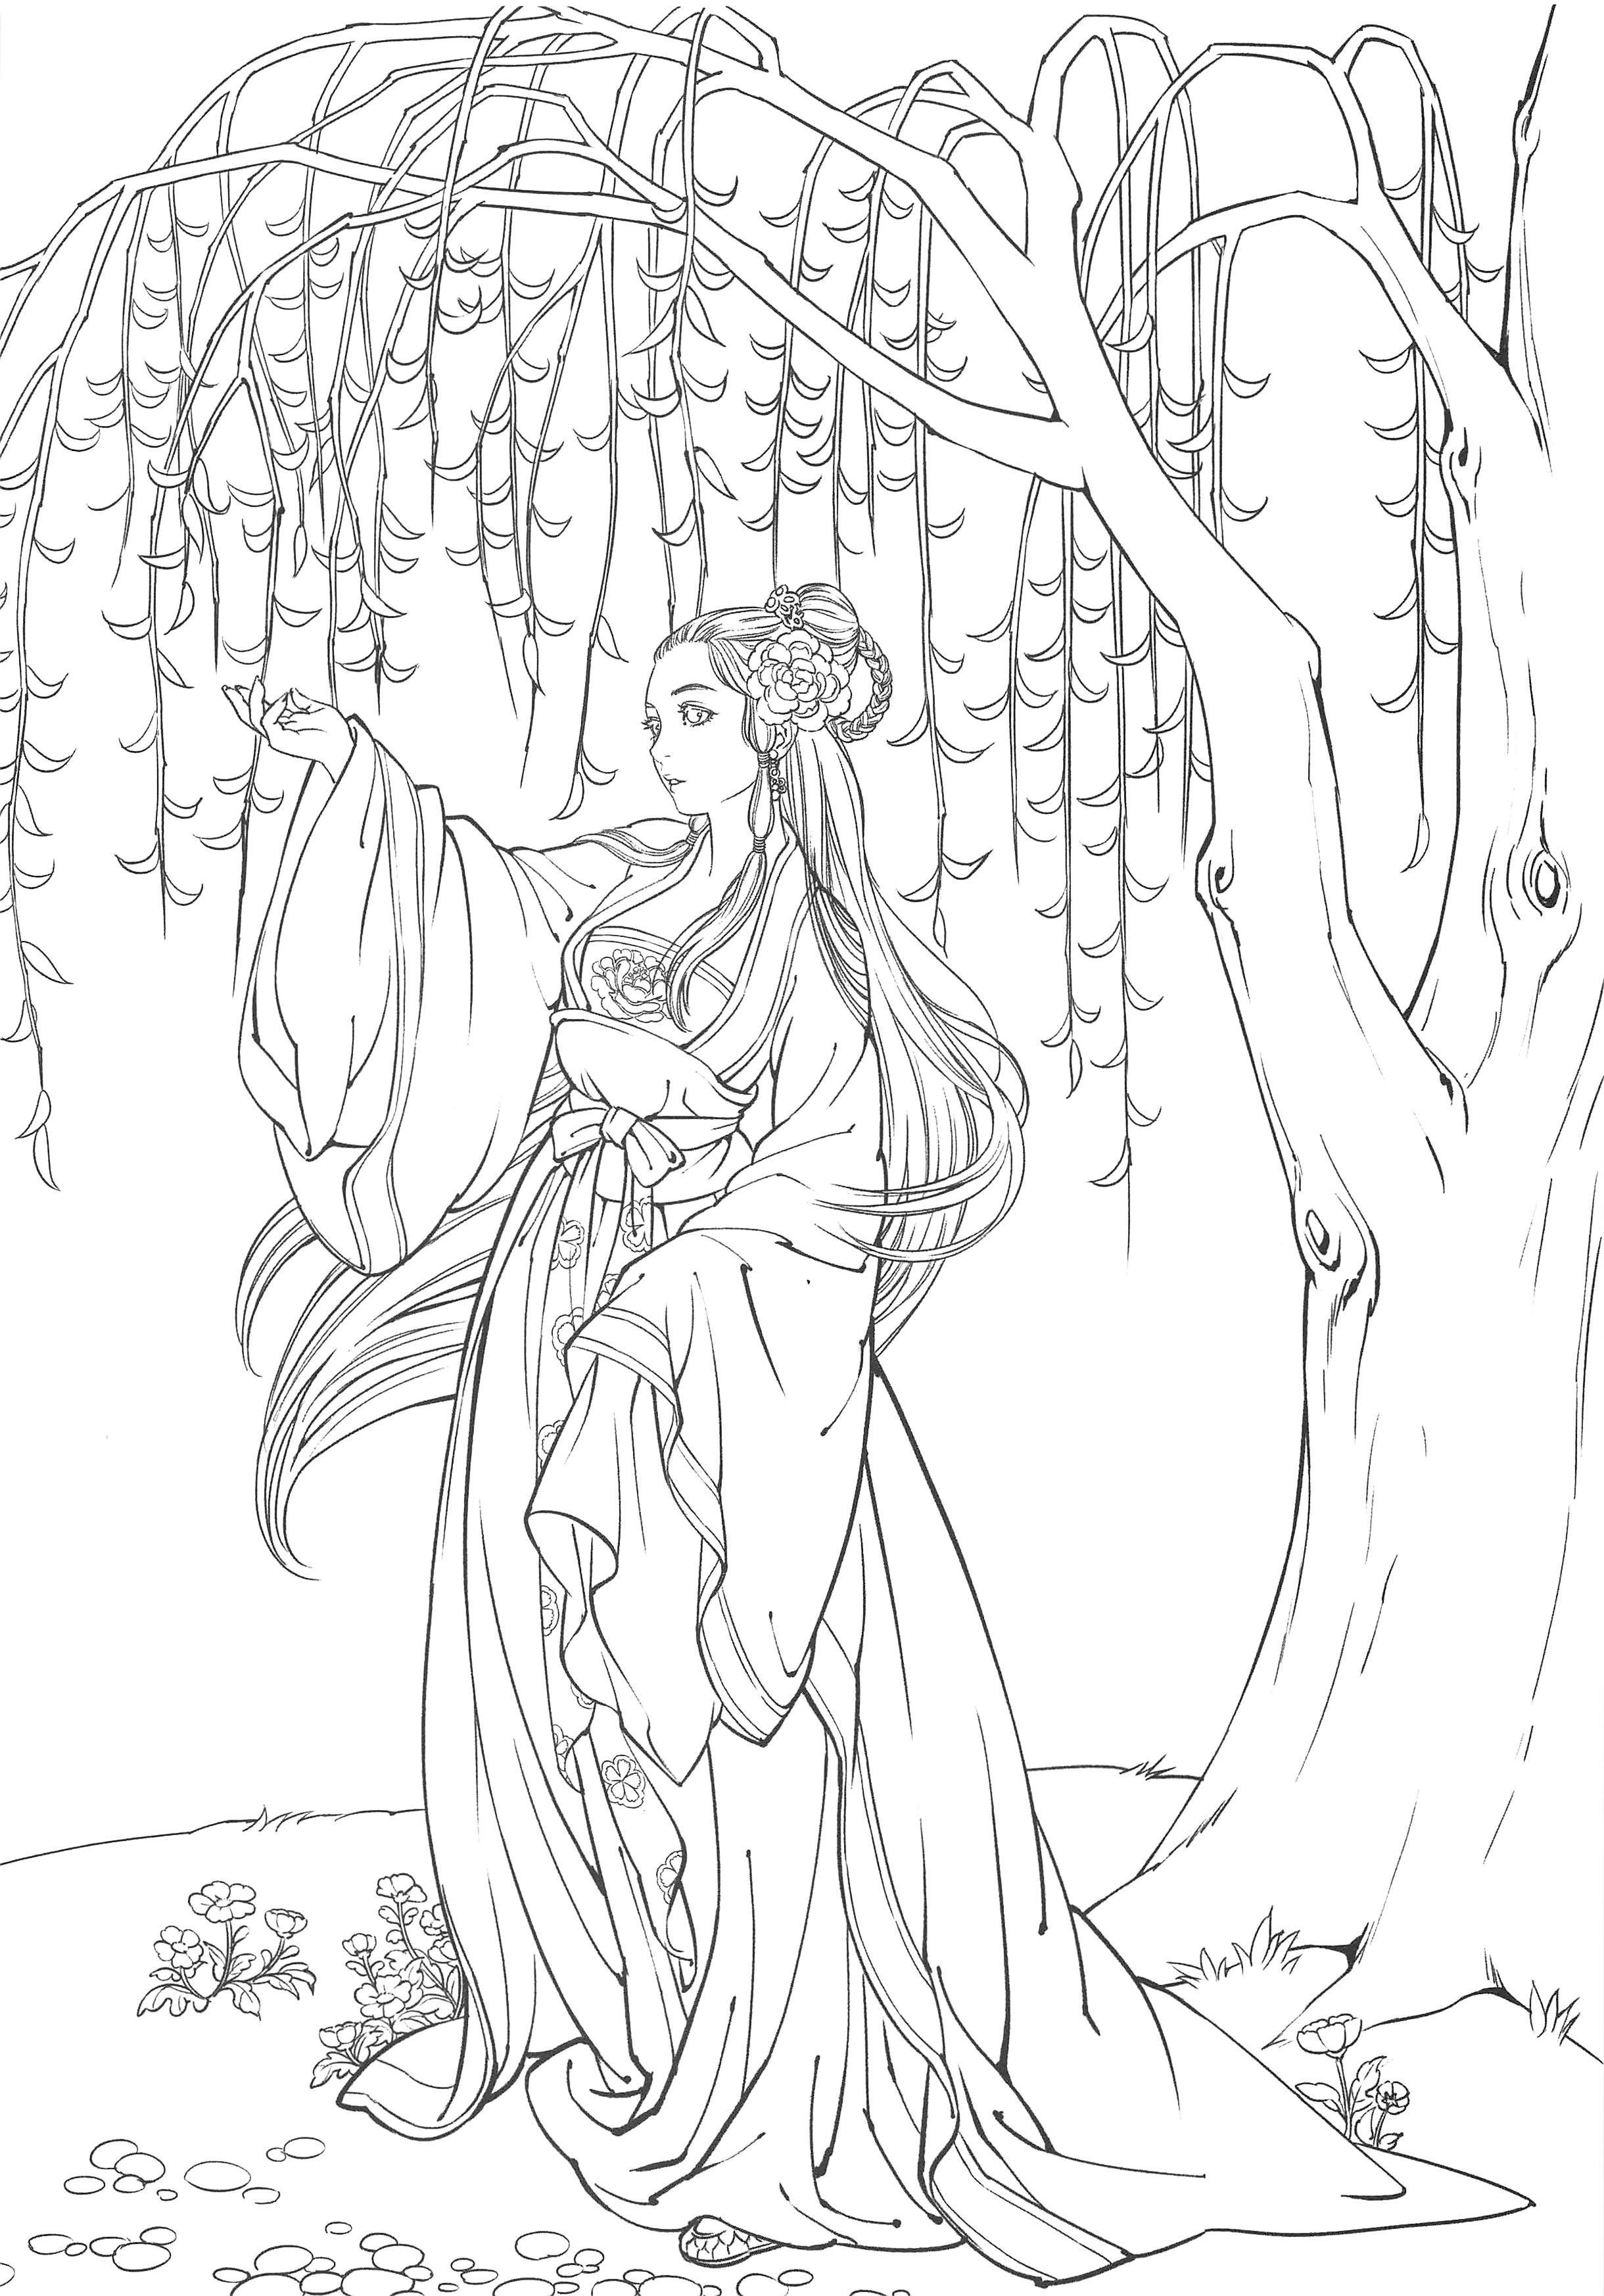 324. Korean Fairy Tales Coloring Book Vol. 1